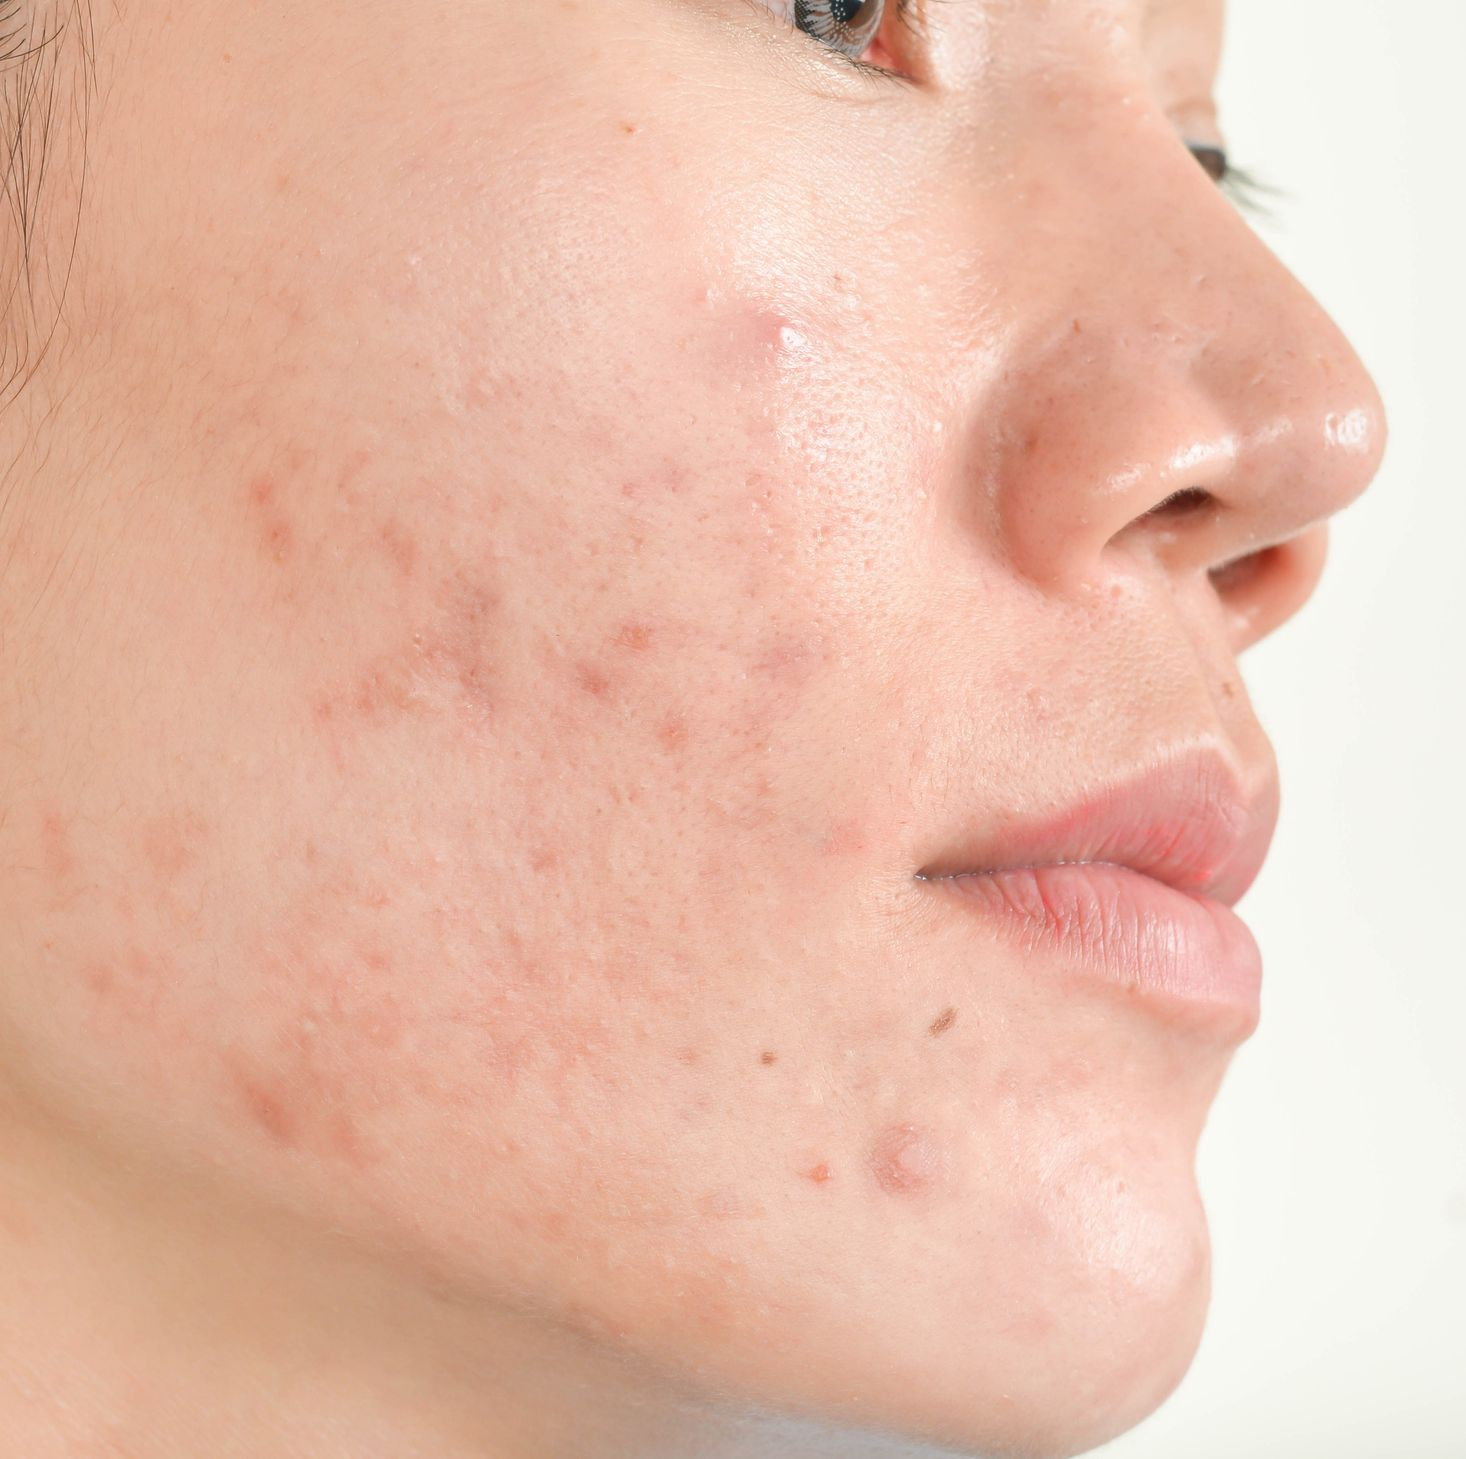 What Causes Adult Acne? 6 Possible Reasons Behind Breakouts, According to Dermatologists